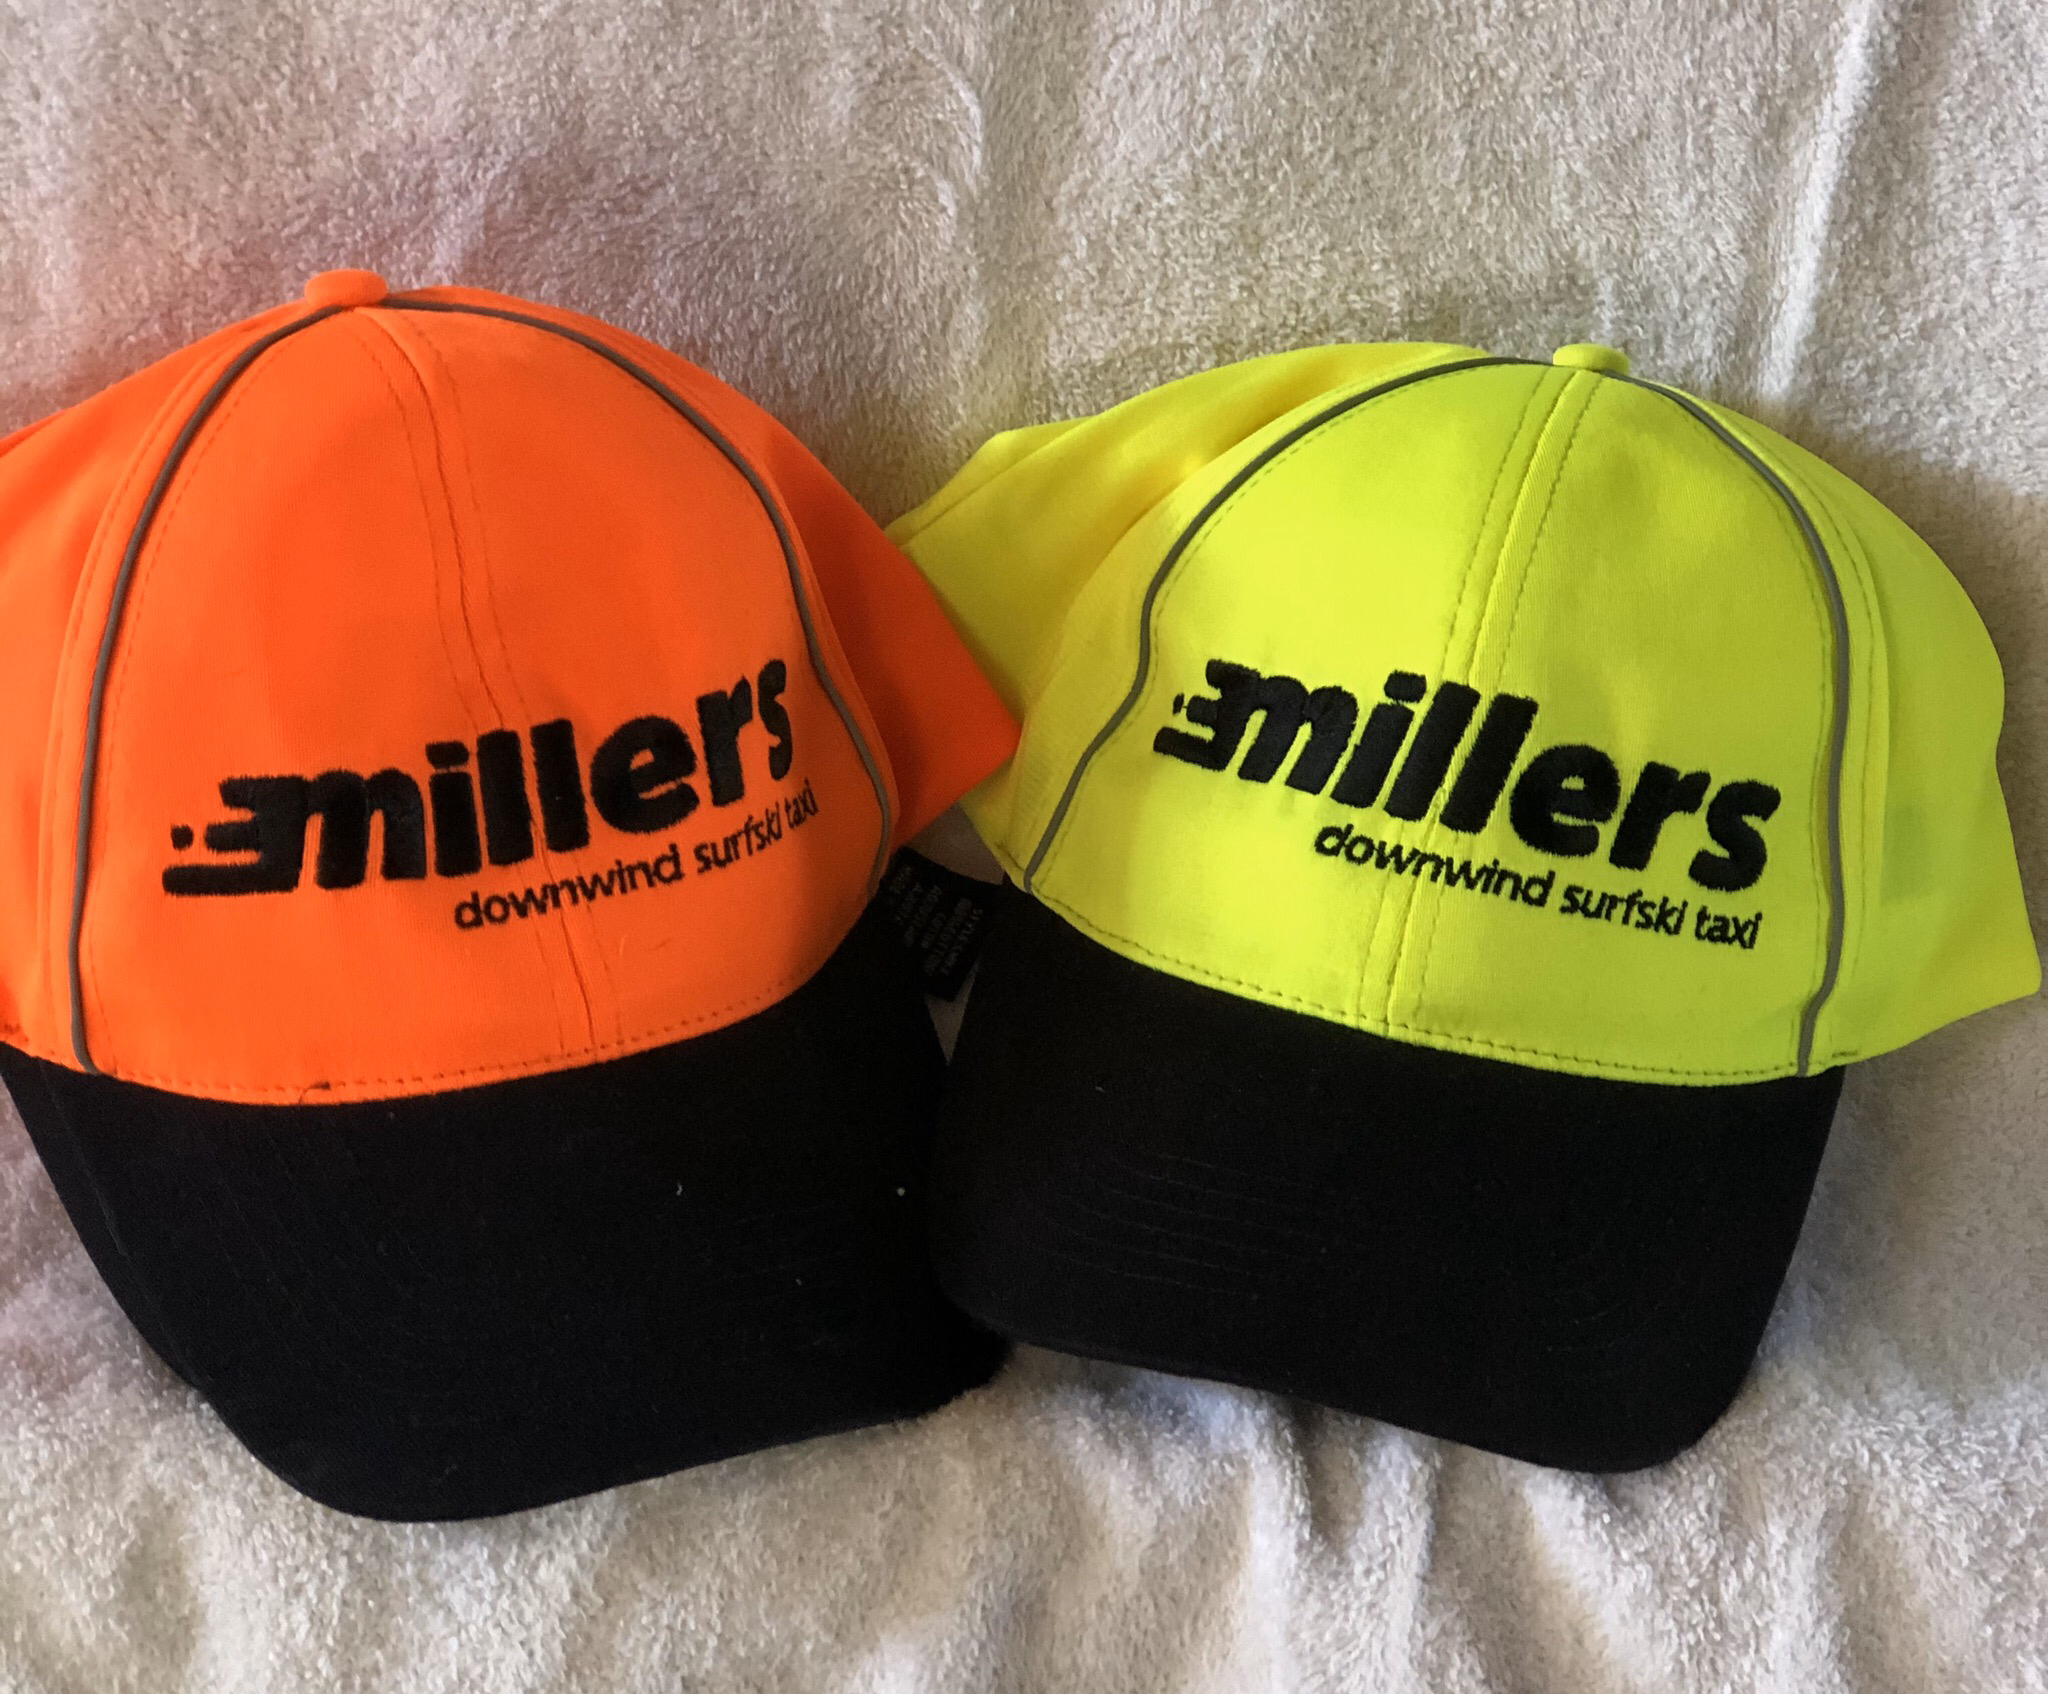 Miller's taxi hat 00226